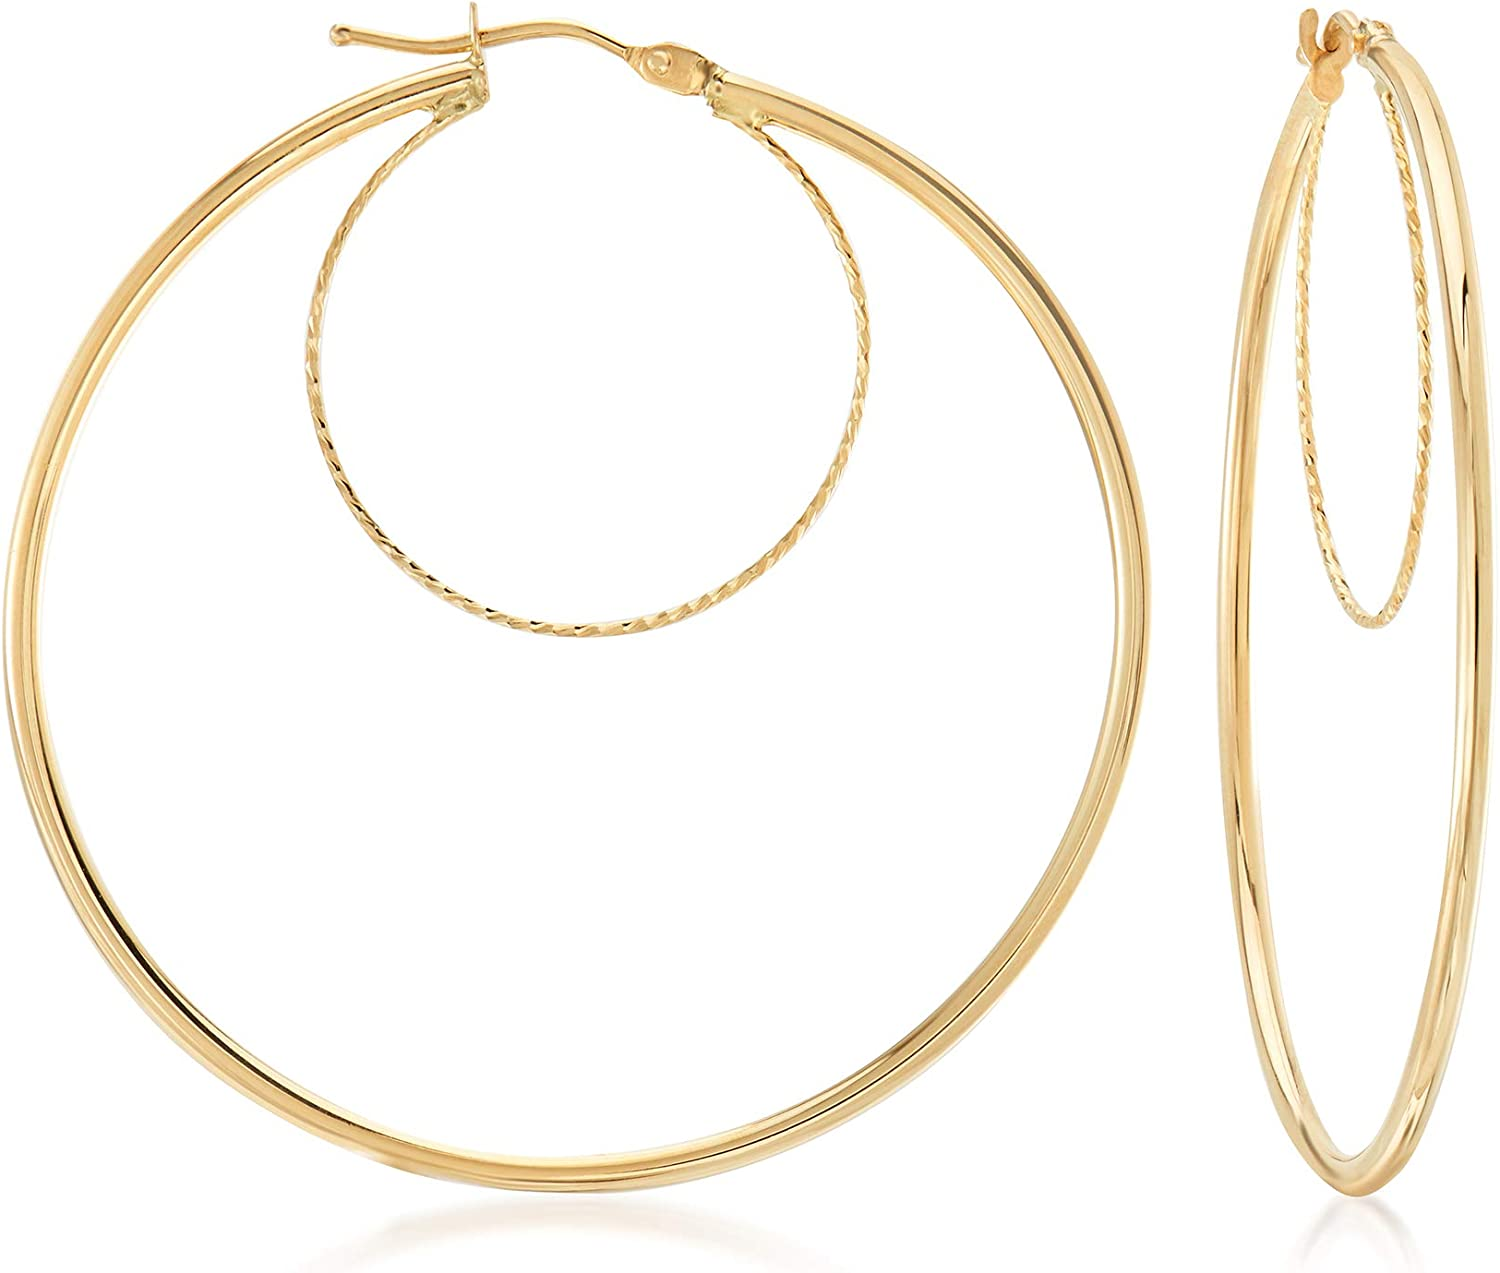 Ross-Simons Italian 14kt Yellow Gold Textured and Polished Double-Hoop Earrings